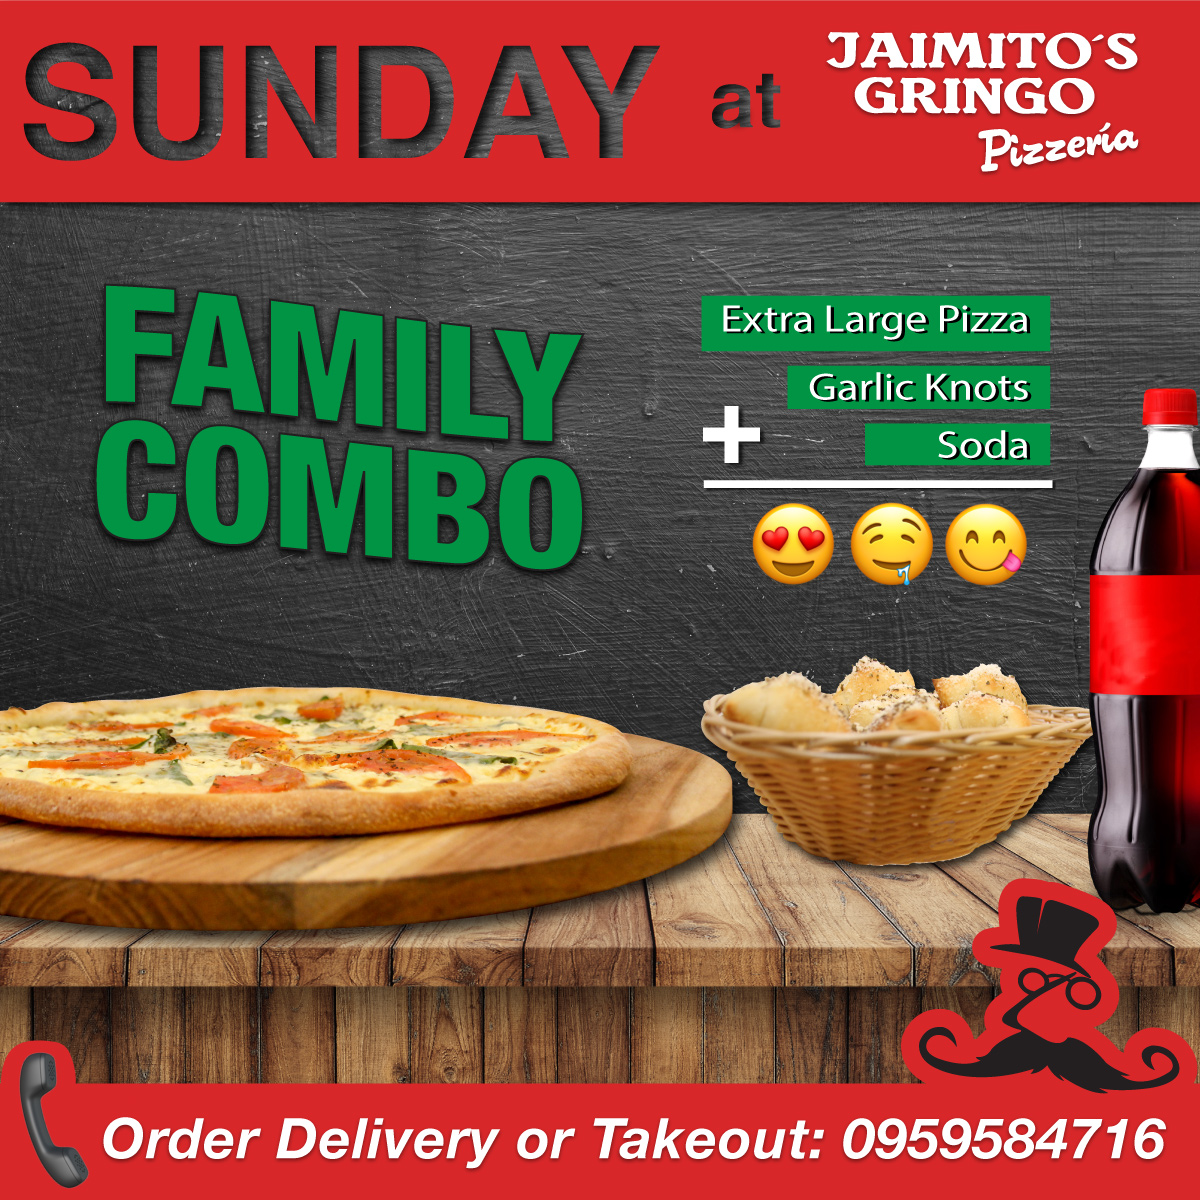 jaimitos-sunday-promo-1-ENGLISH.jpg